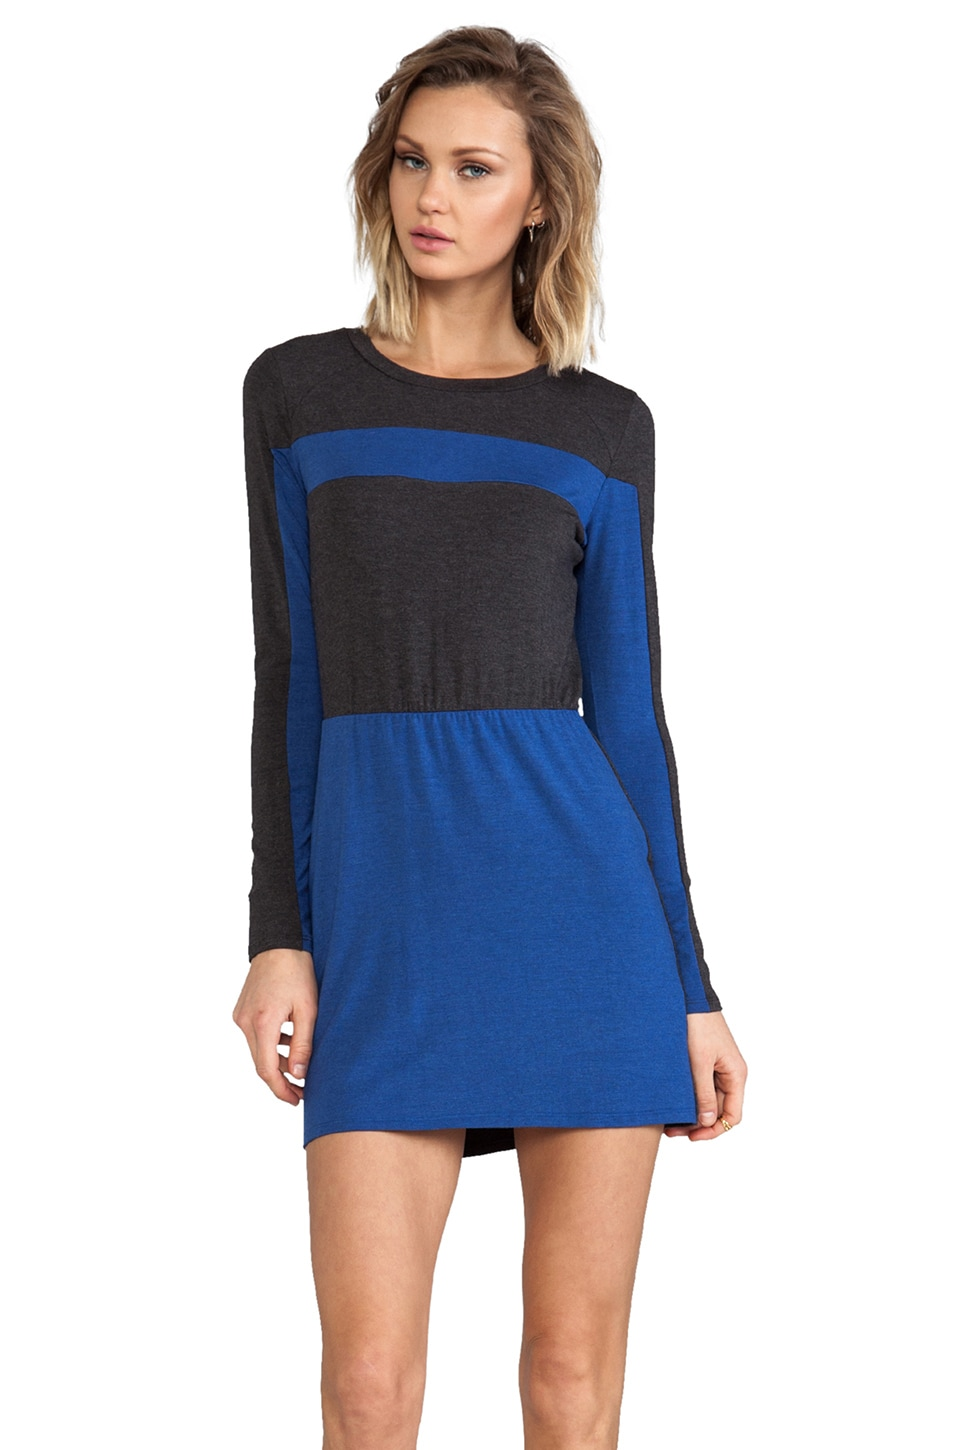 Heather Colorblock Mini Dress in Heather Black/Heather Cobalt